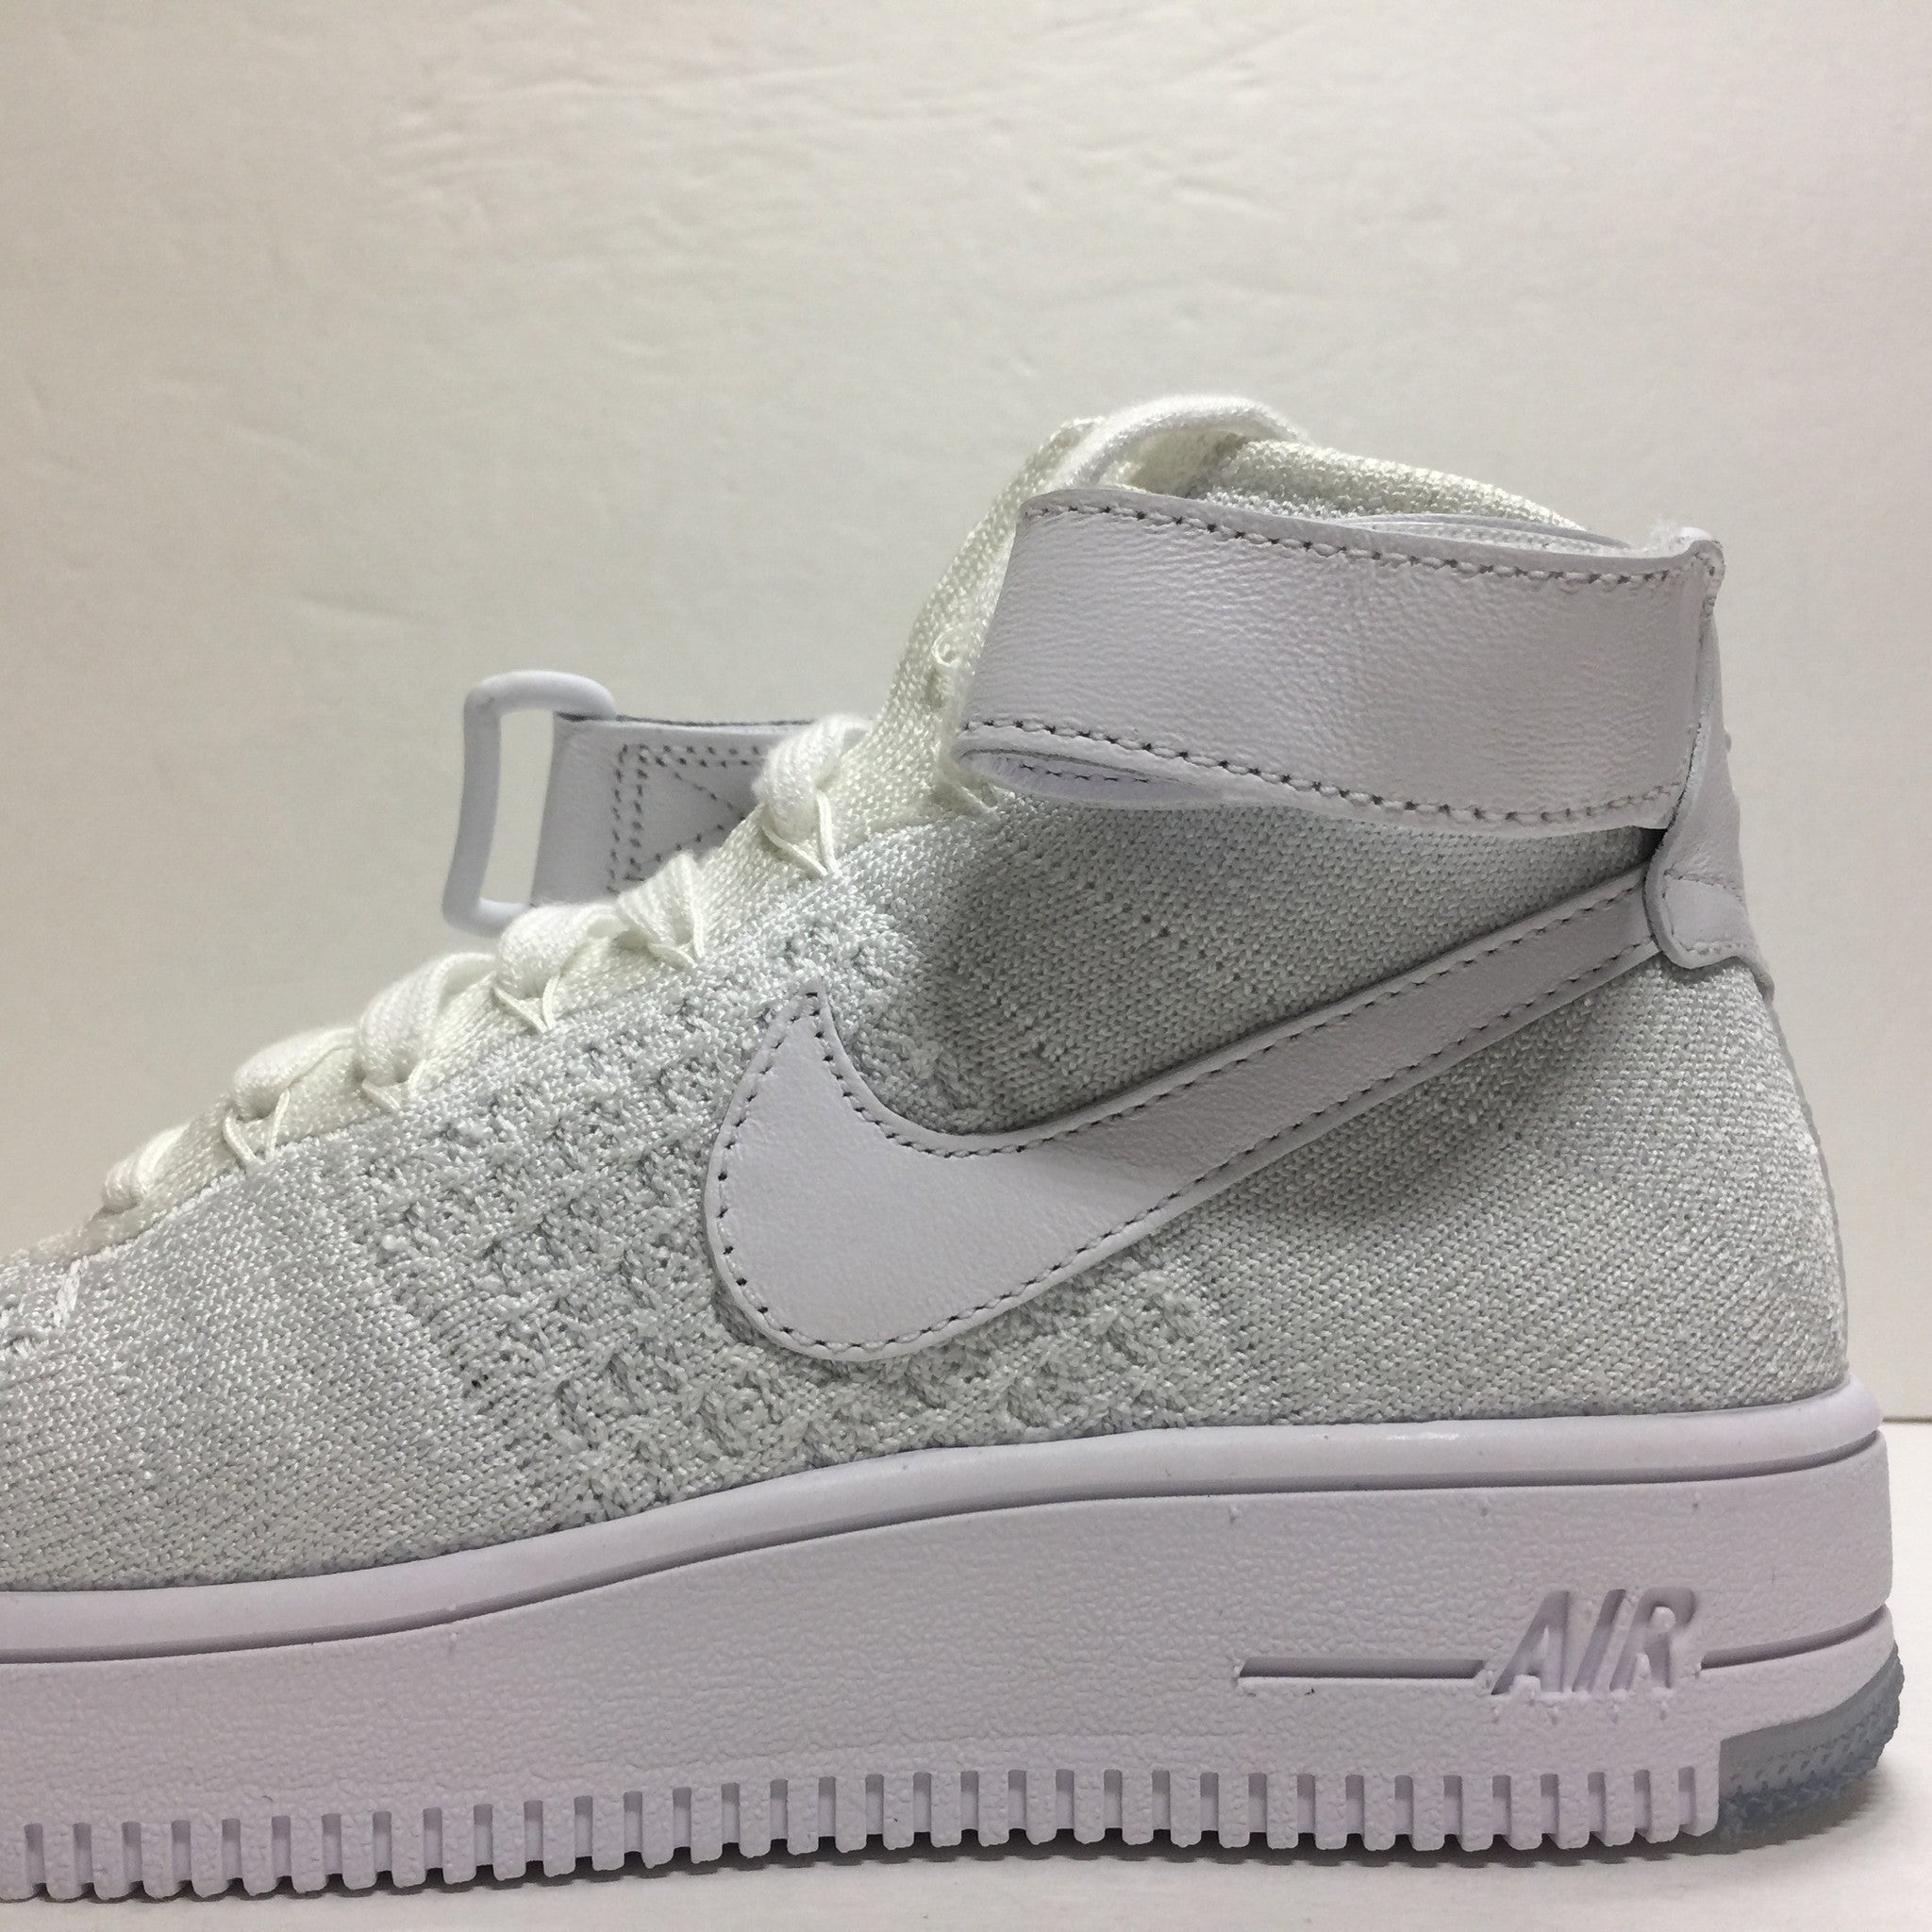 DS W Nike Air Force 1 Flyknit High White Size 6/6.5/Size 7.5 - DOPEFOOT  - 7